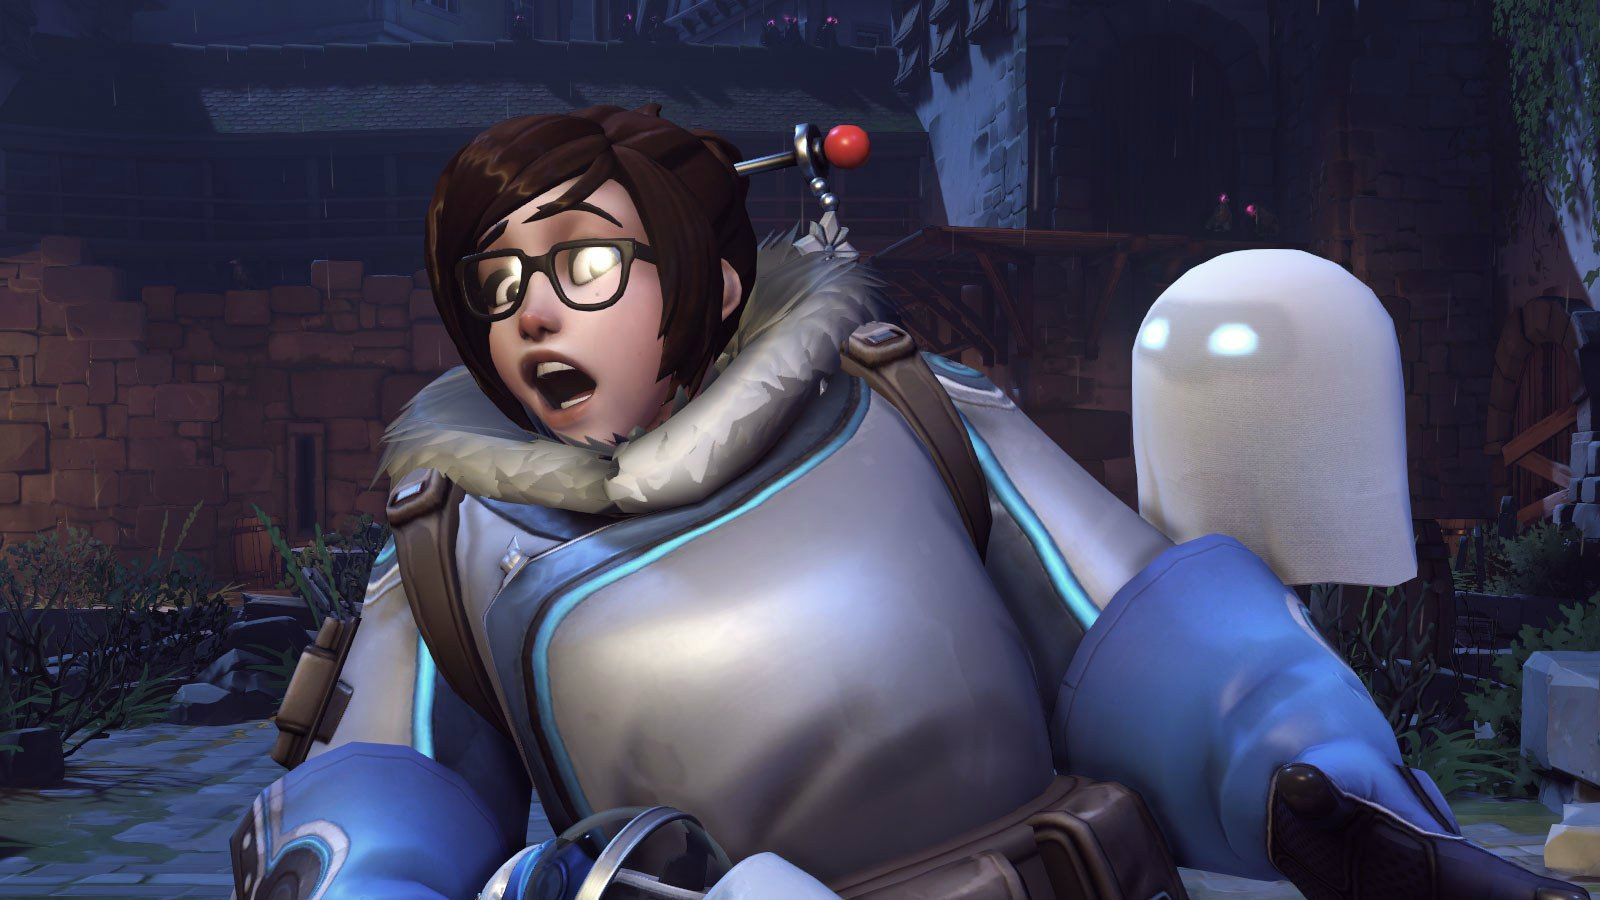 Mei is scared of ghosts